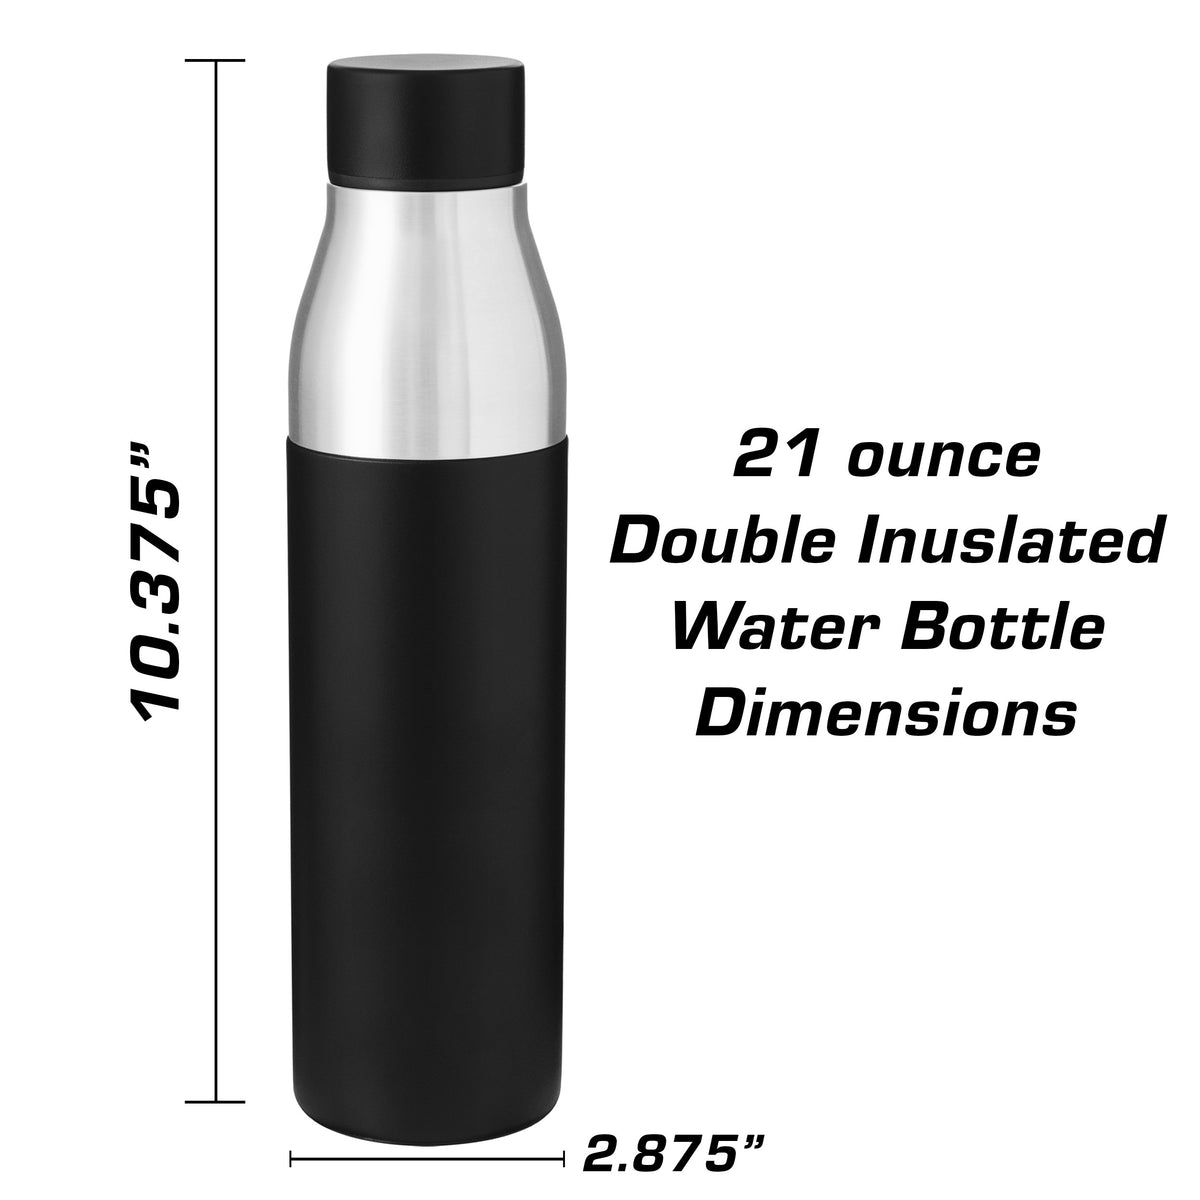 VW Scirocco mk2 Insulated Stainless Steel Water Bottle - 21 oz